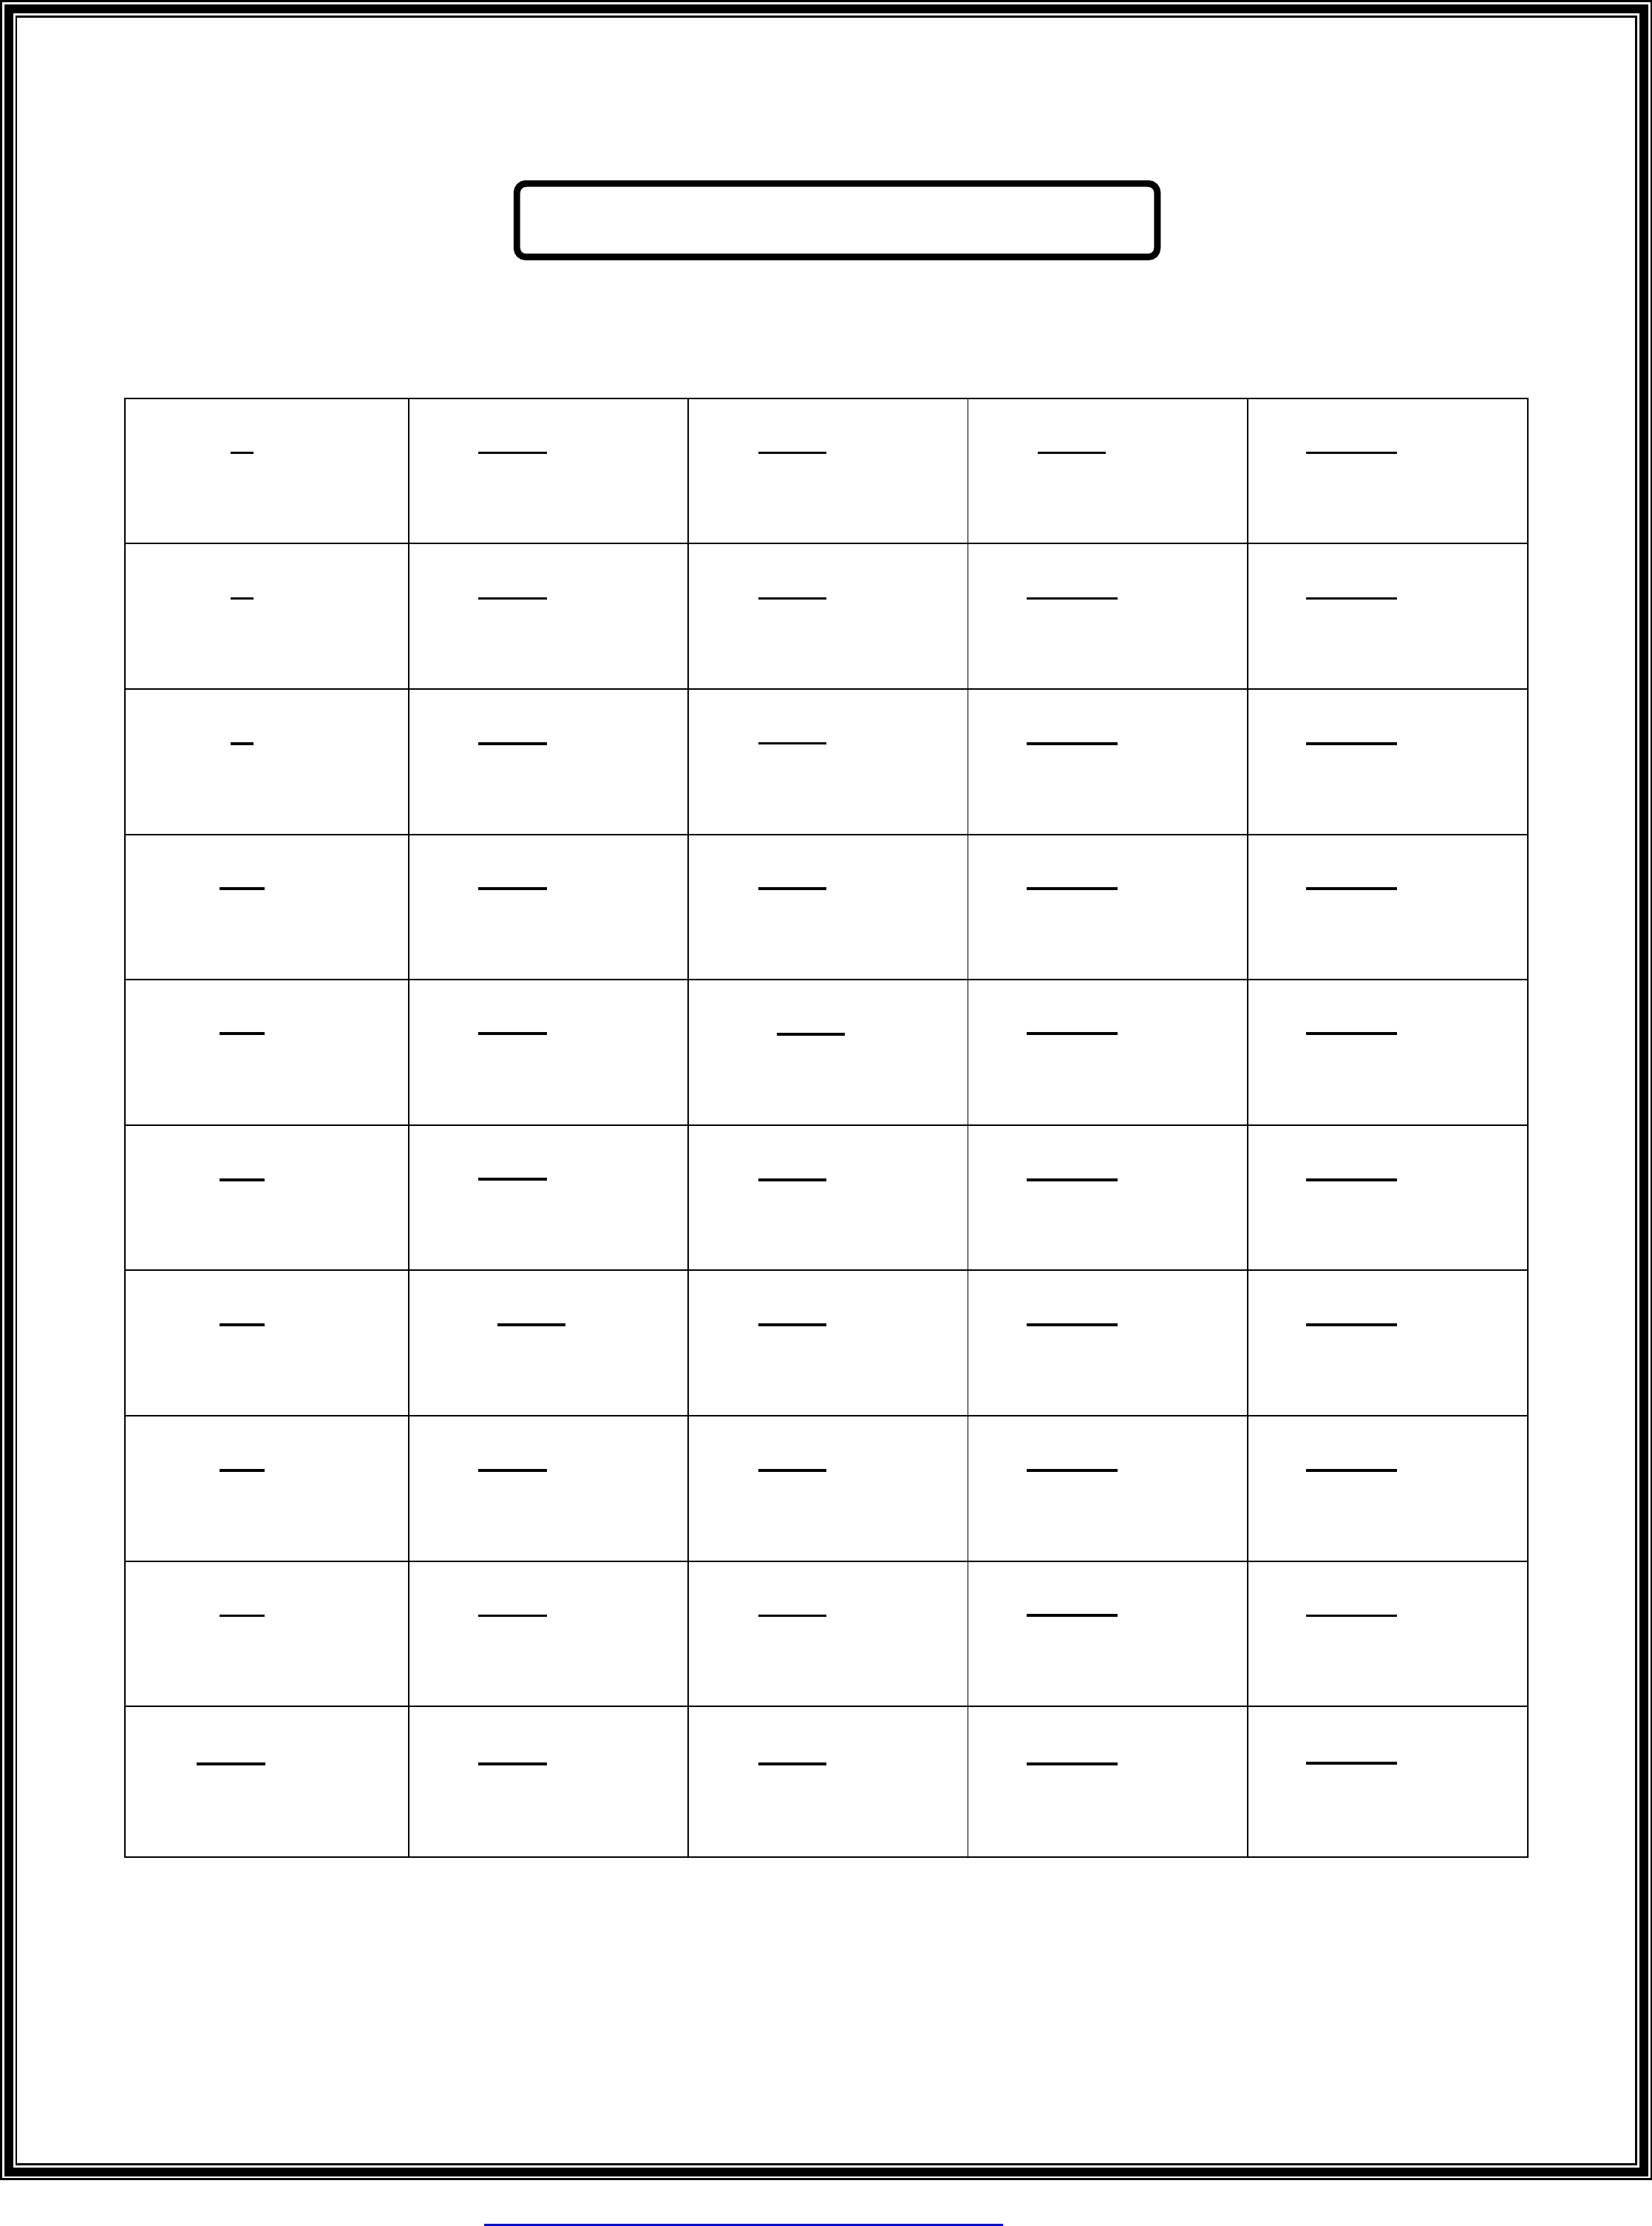 Sample Square Roots Chart Free Download